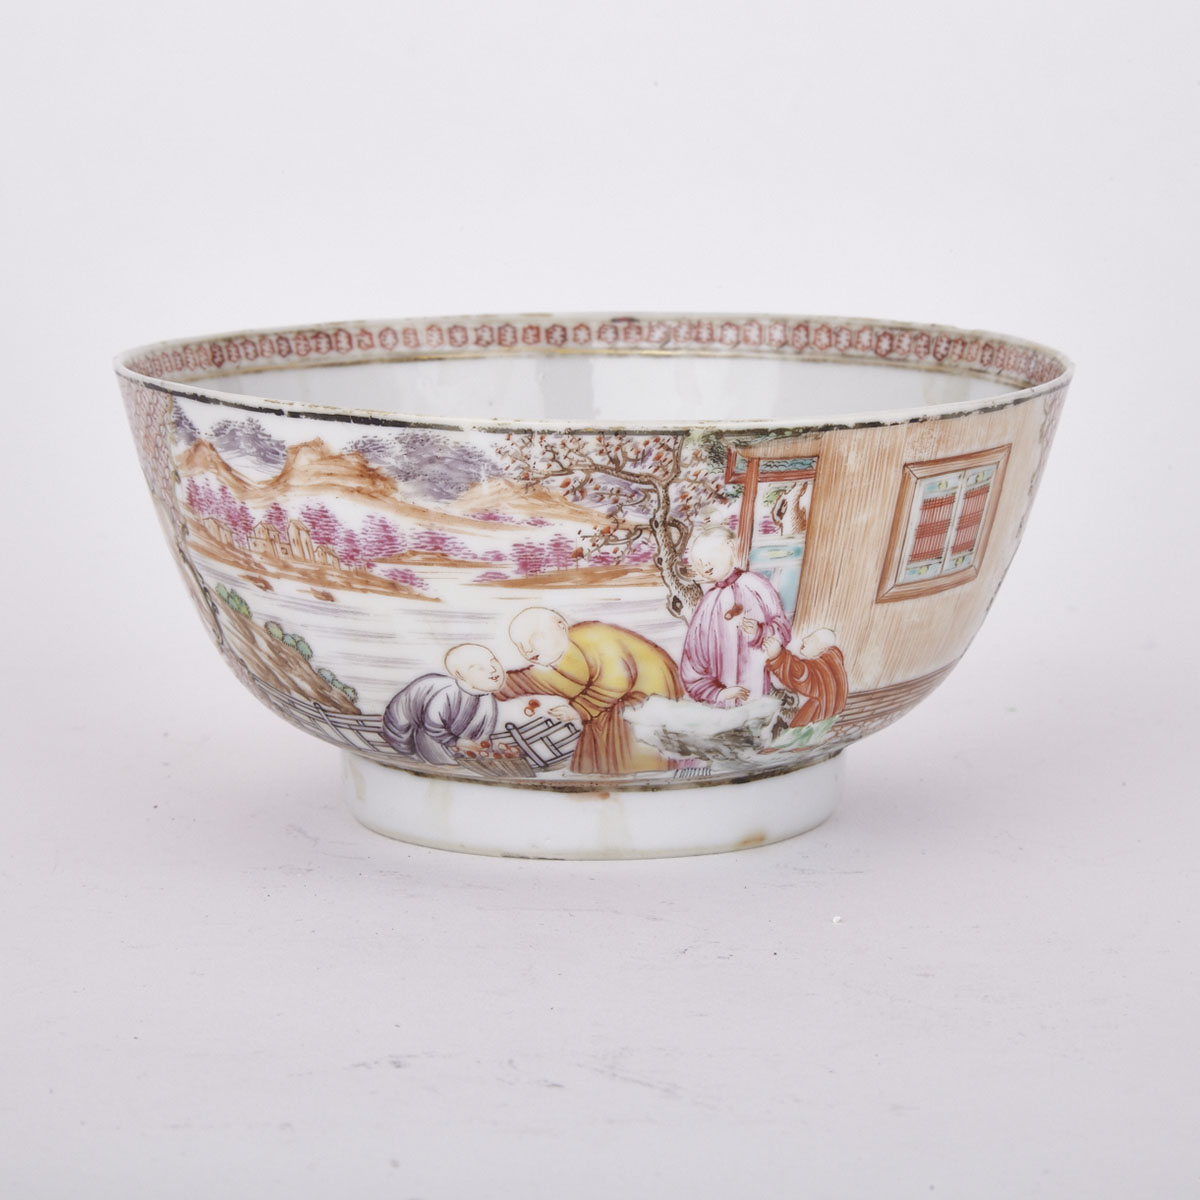 Export Famille Rose Bowl, 18th Century